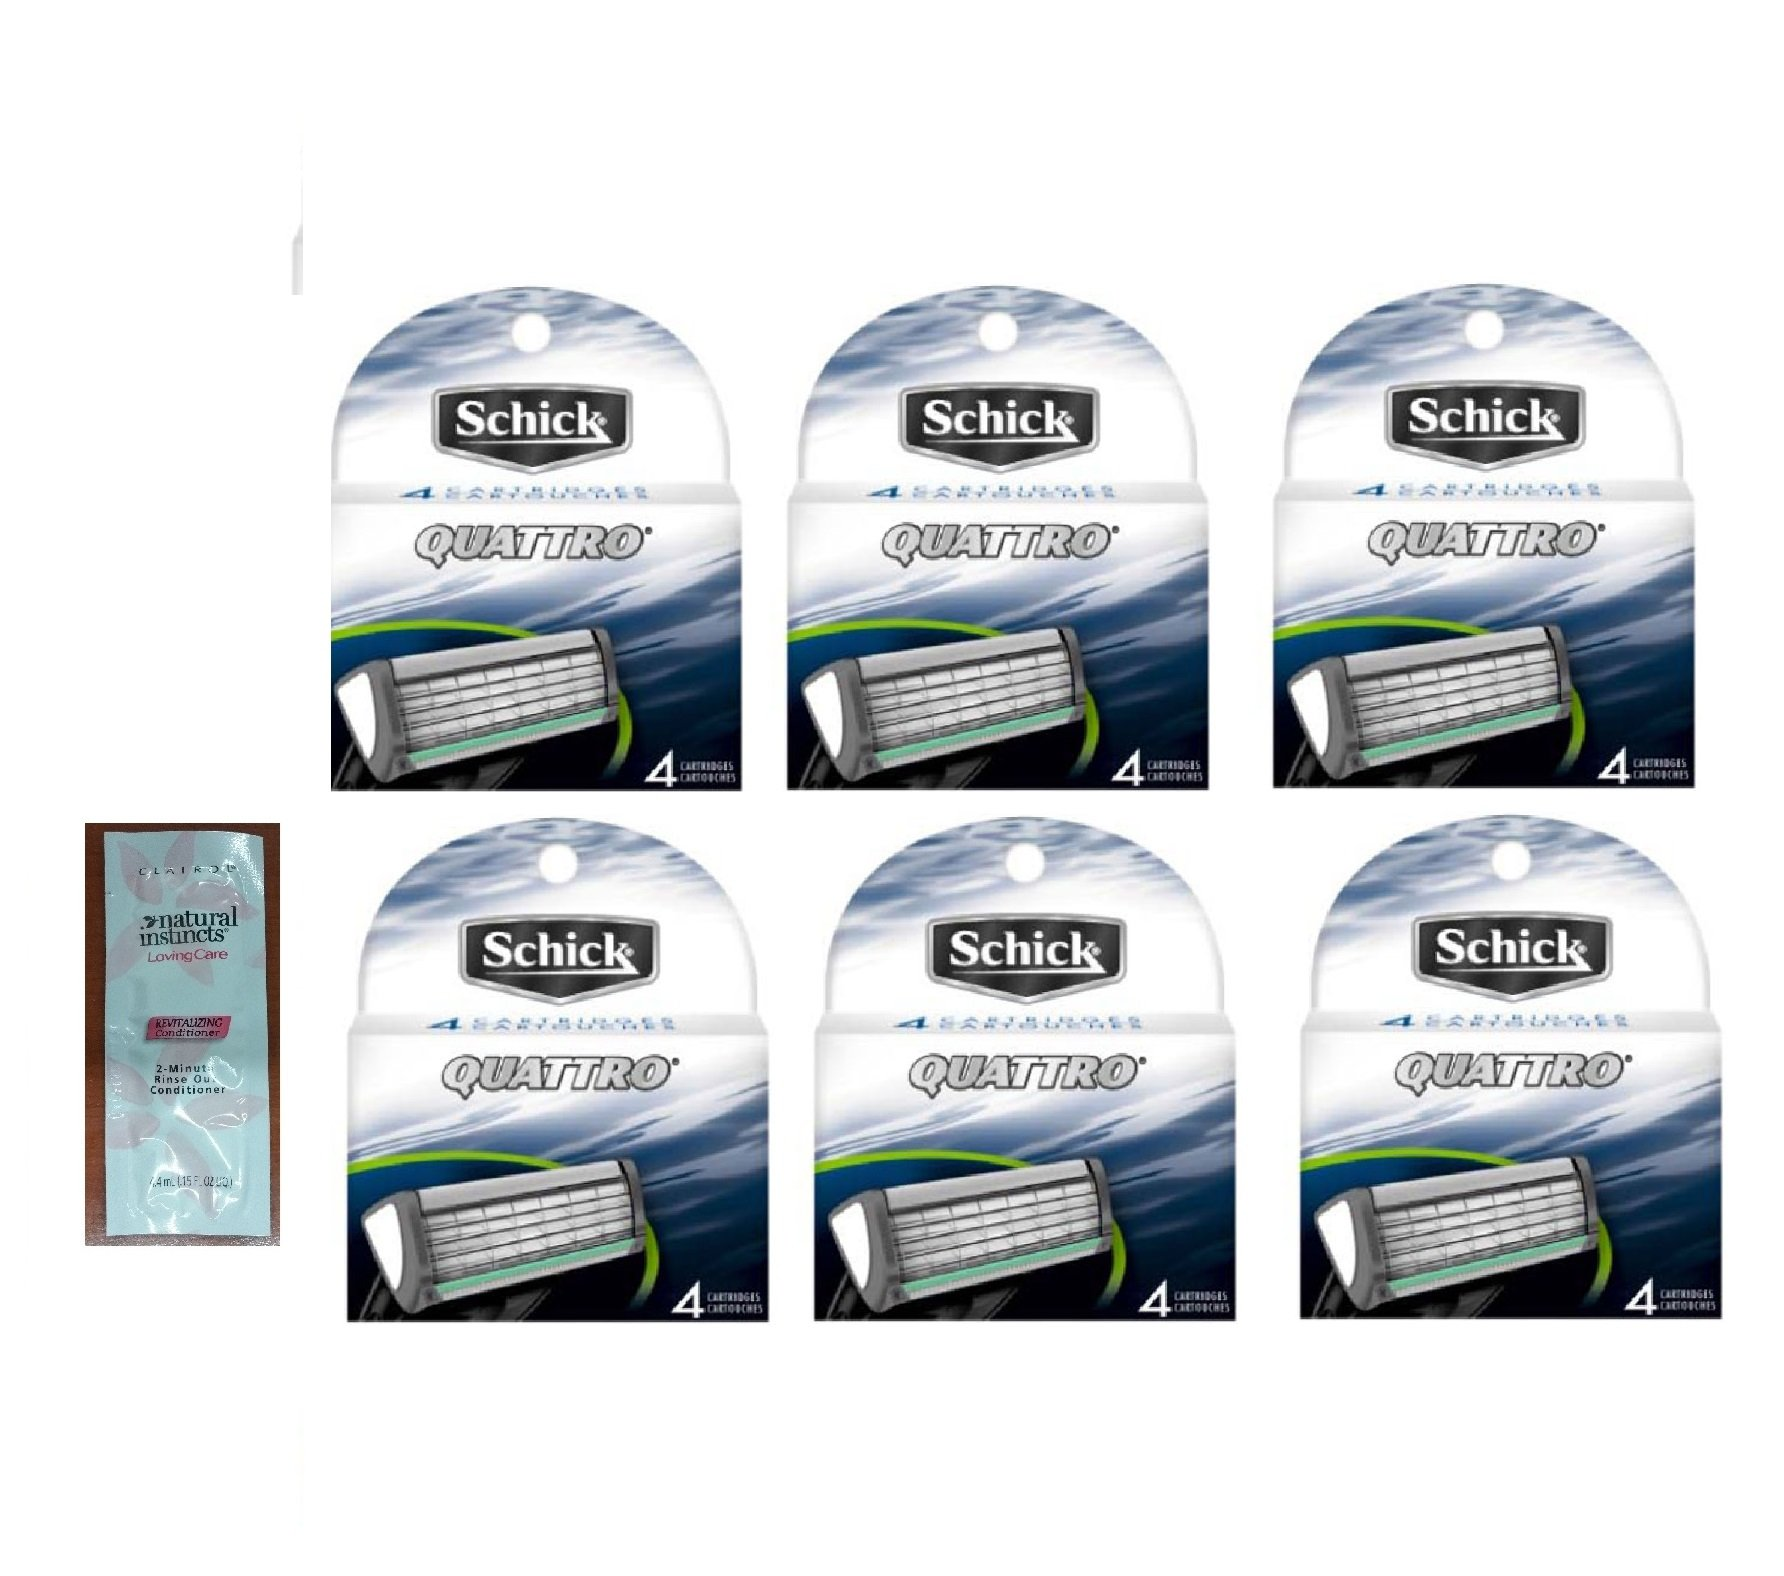 Schick Quattro Refill Razor Blade Cartridges, 4 Cartridges (Pack of 6) with FREE Loving Color trial size conditioner